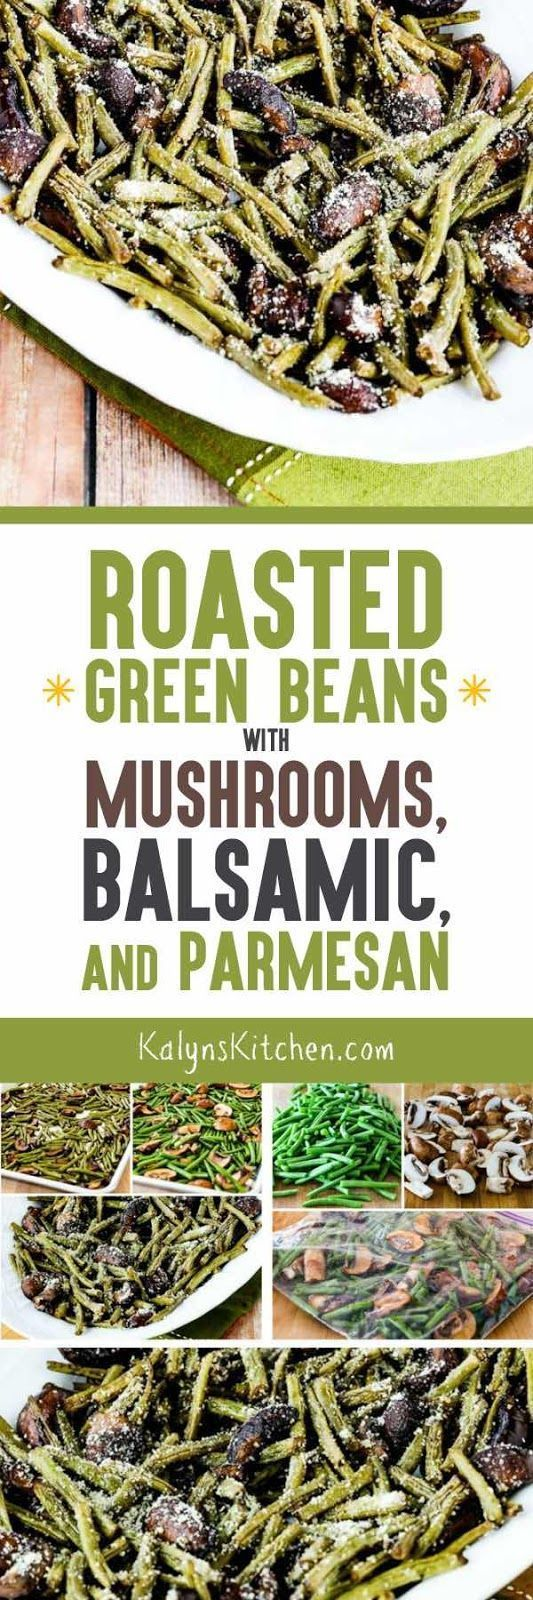 These amazing Roasted Green Beans with Mushrooms, Balsamic, and Parmesan have been pinned over 1.5 MILLION times, and this is one of the most popular holiday recipes on my blog. And these amazing green beans are not only delicious, they're also low-carb, gluten-free, and super easy to make!  [found on http://KalynsKitchen.com]